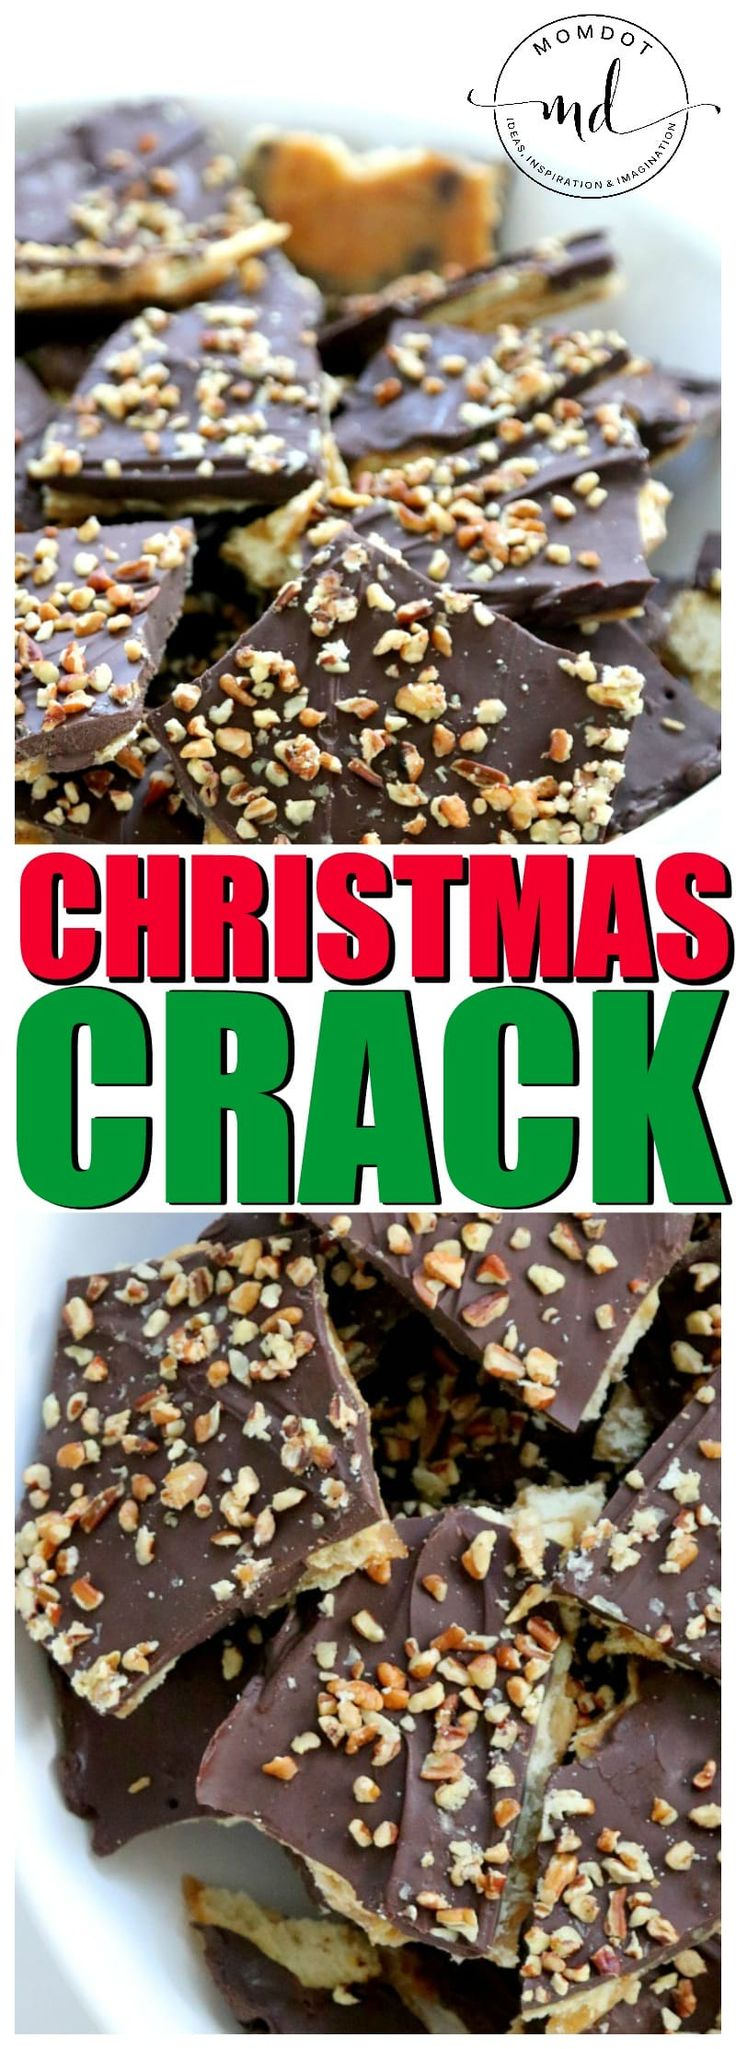 Christmas Crack Recipe, Ritz cracker toffee, homemade caramel and chocolate coated crackers for an addicting holiday treat